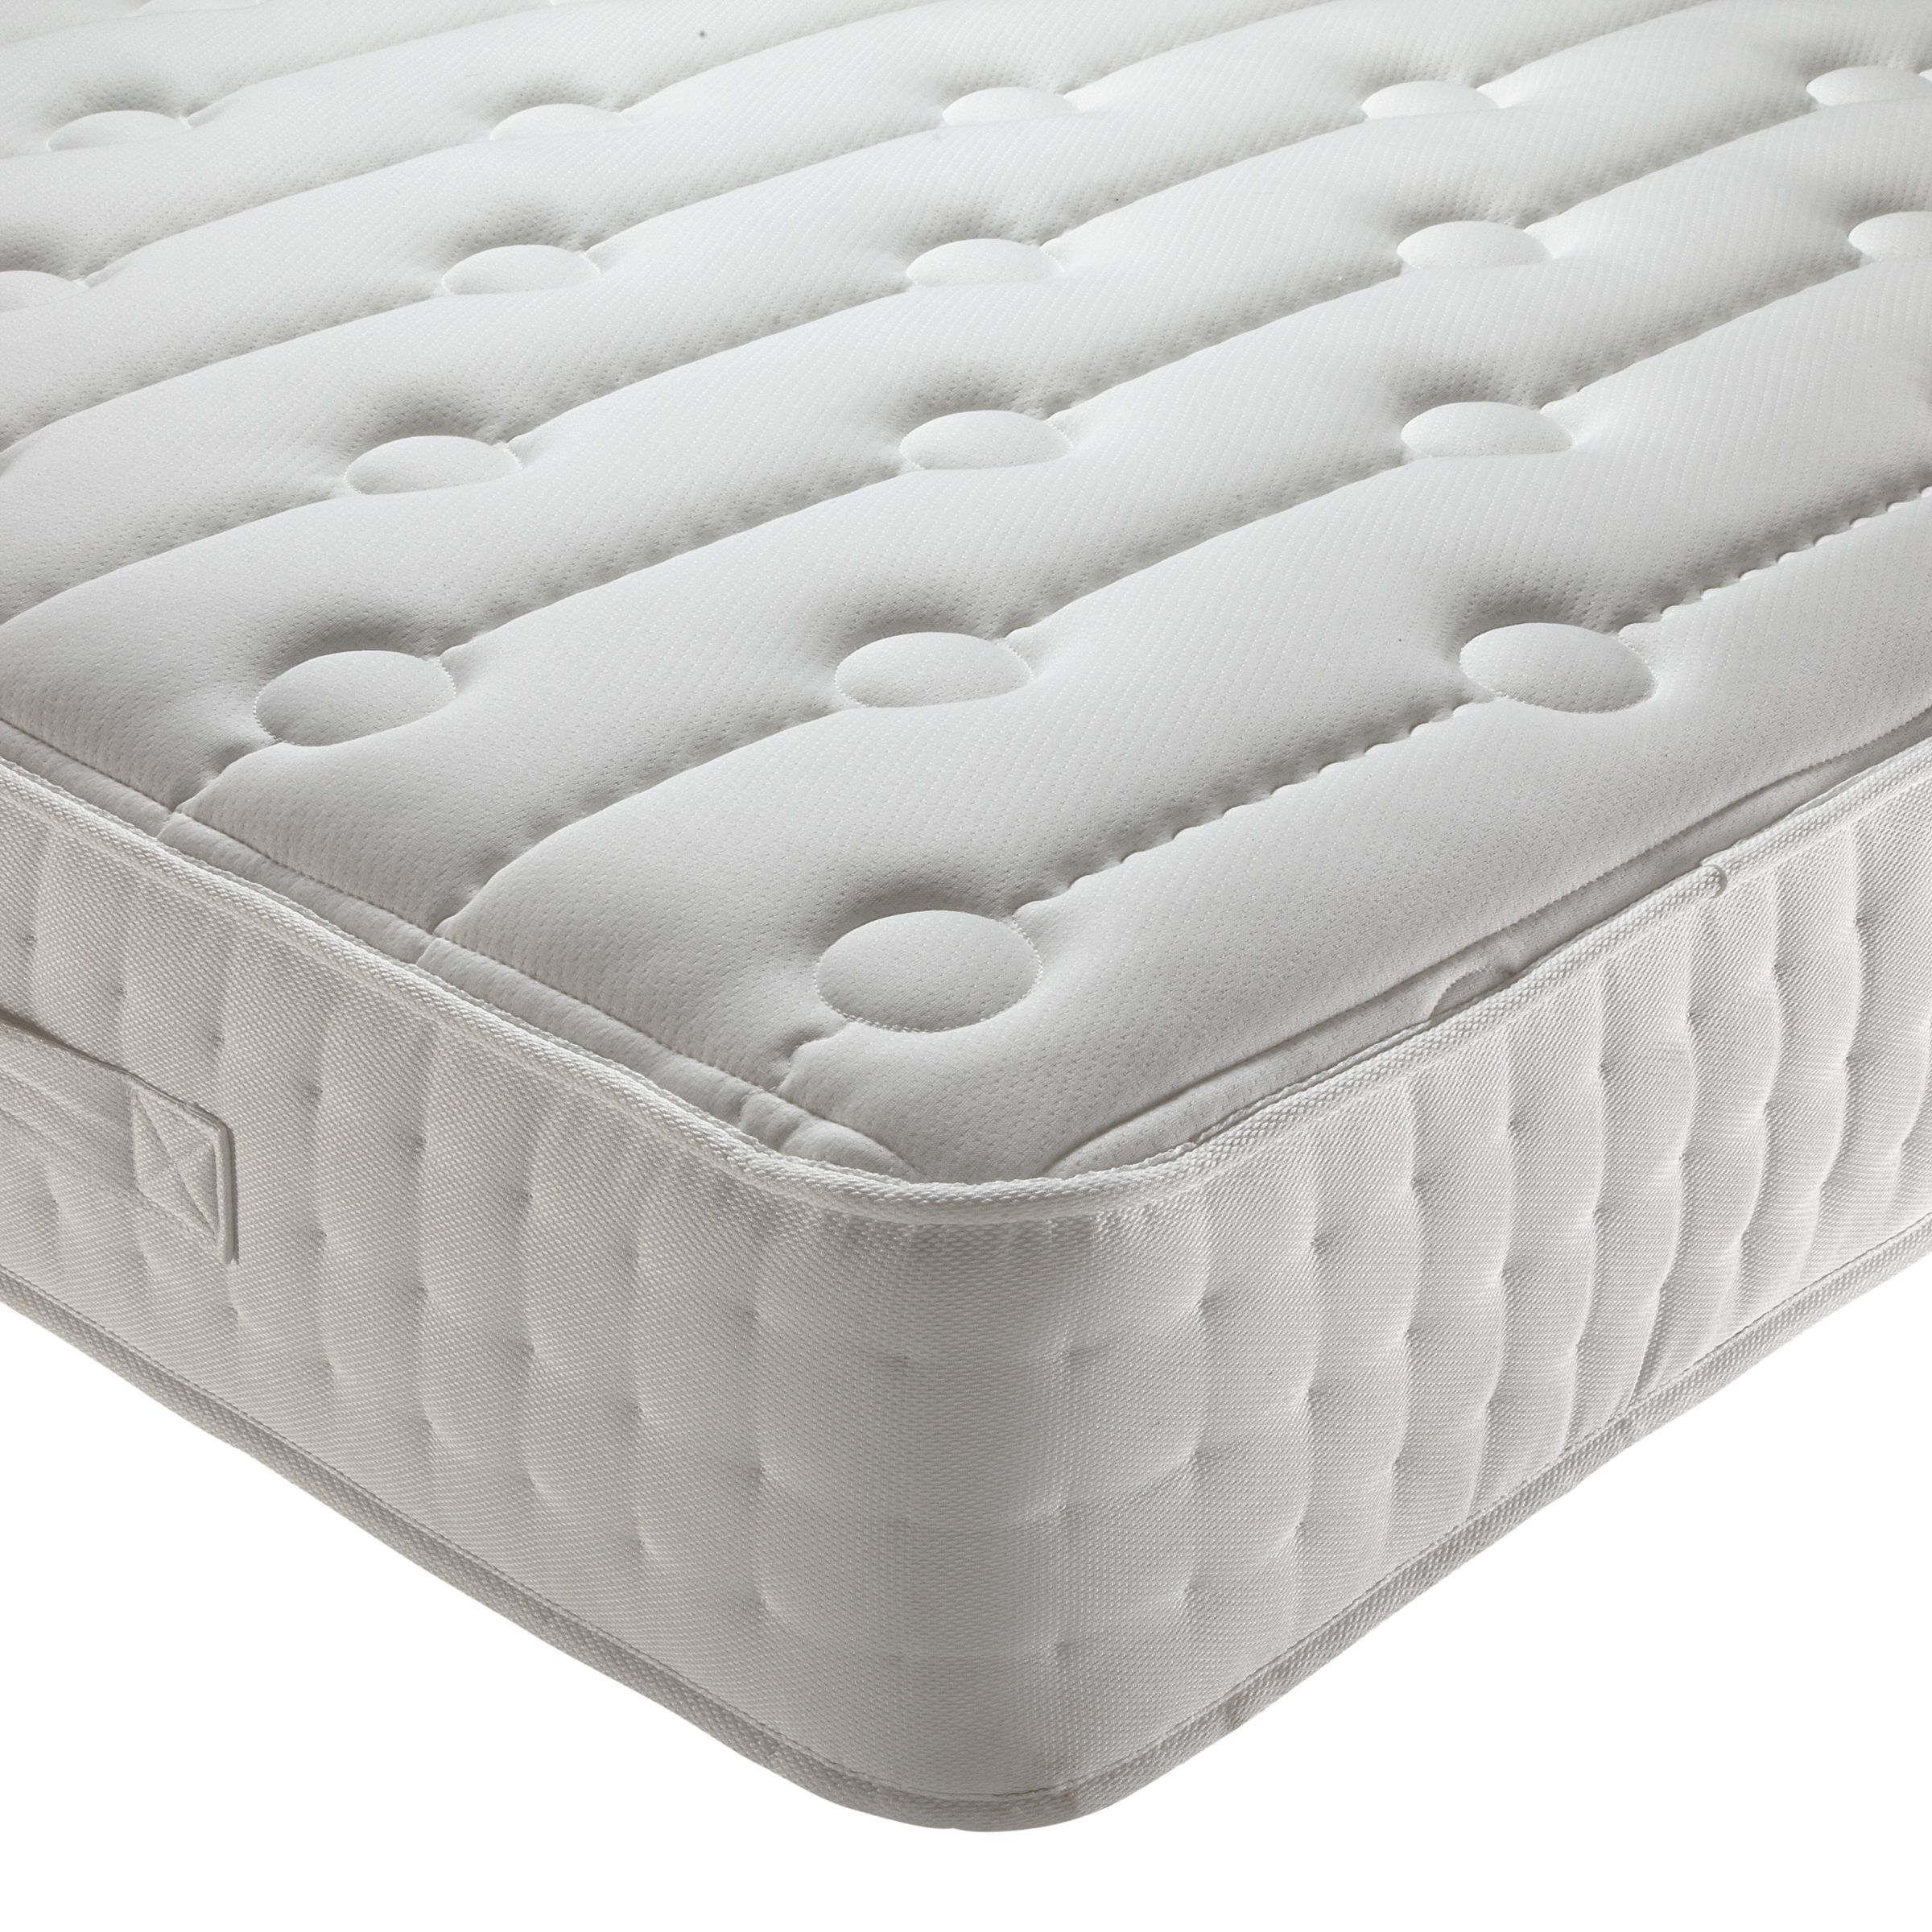 Silentnight Classic Platinum Pocket 2000 Mattress, Kingsize